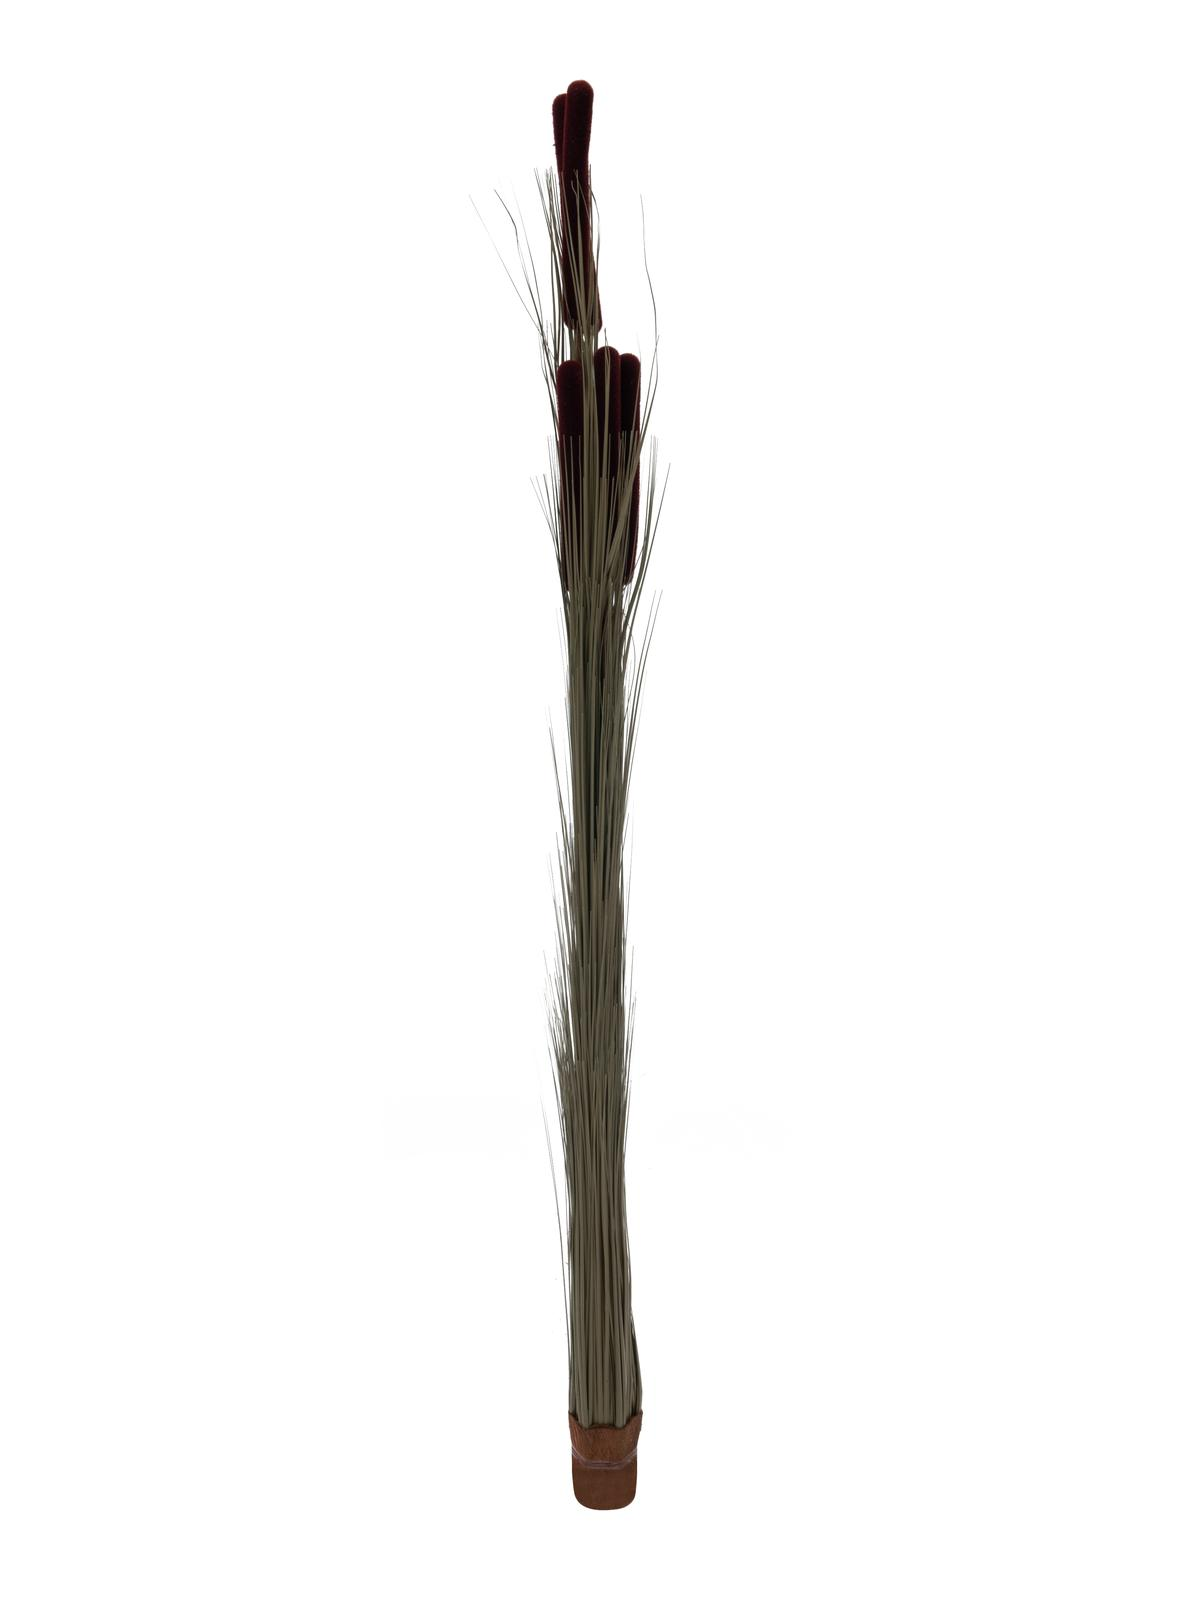 EUROPALMS Canna di erba tife, marrone scuro, 152 cm